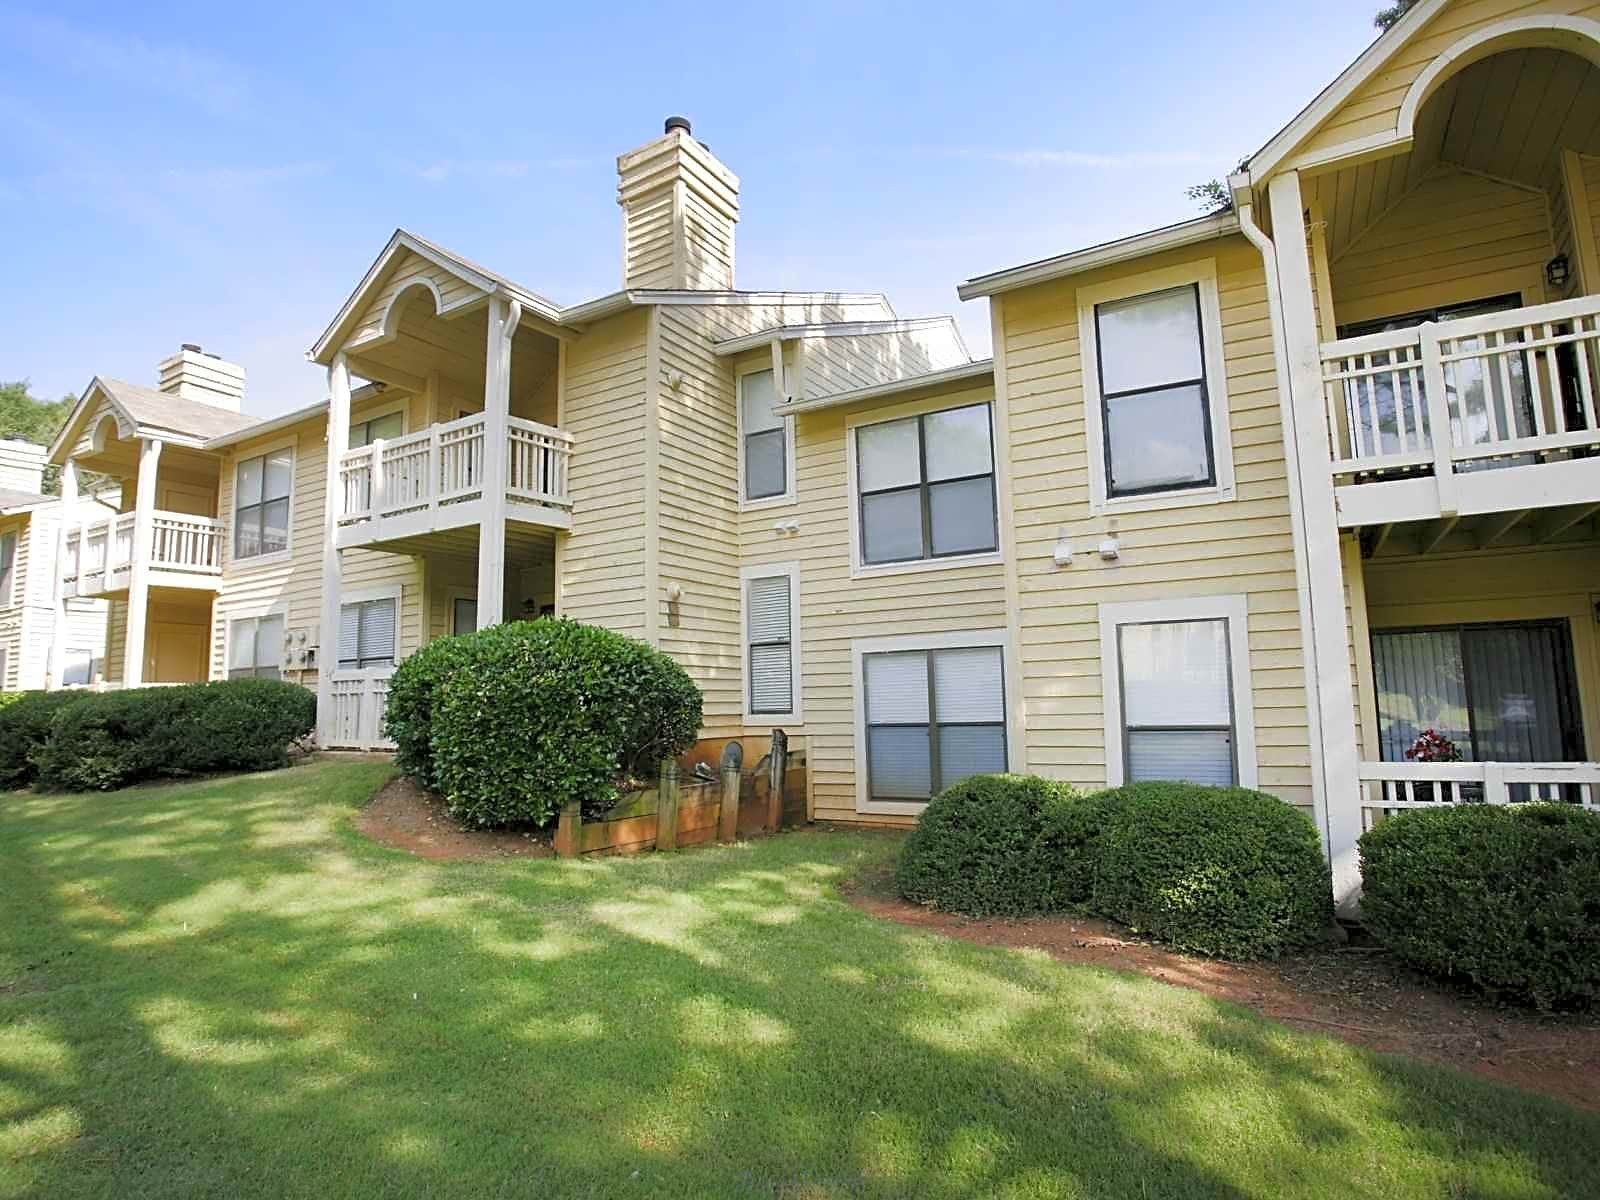 Photo: Charlotte Apartment for Rent - $610.00 / month; 2 Bd & 1 Ba